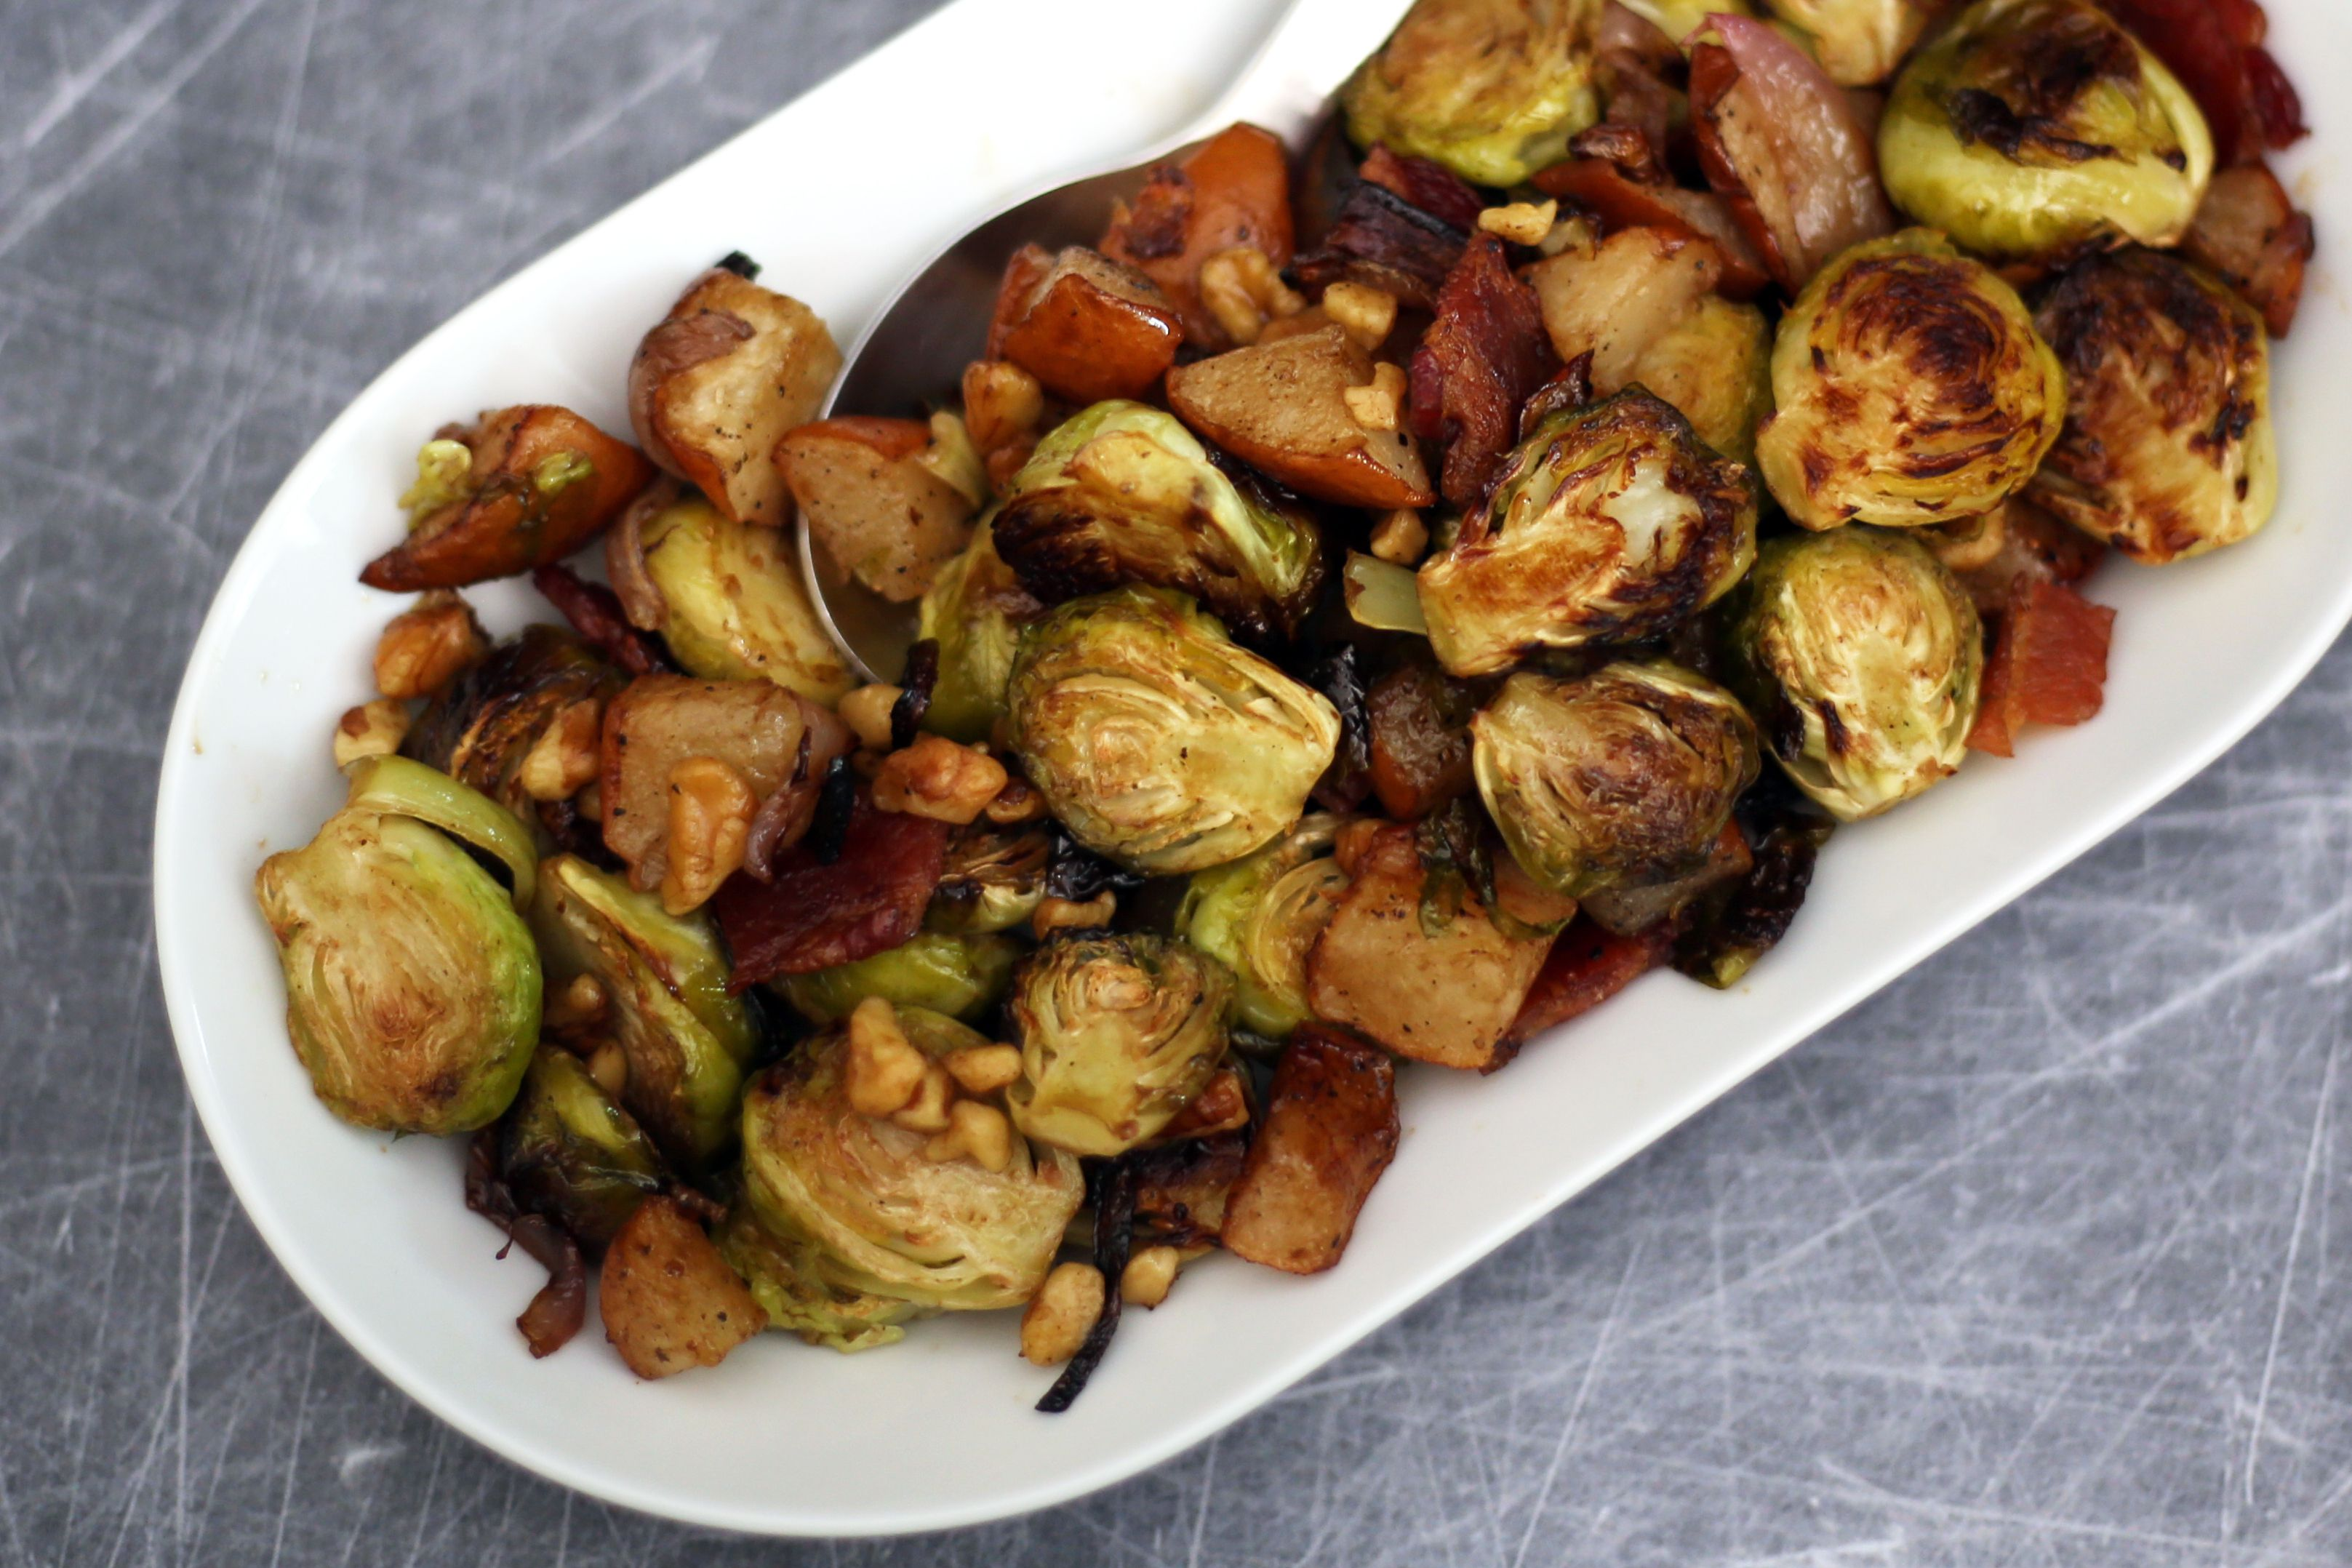 Roasted Brussels Sprouts With Pears, Walnuts and Bacon